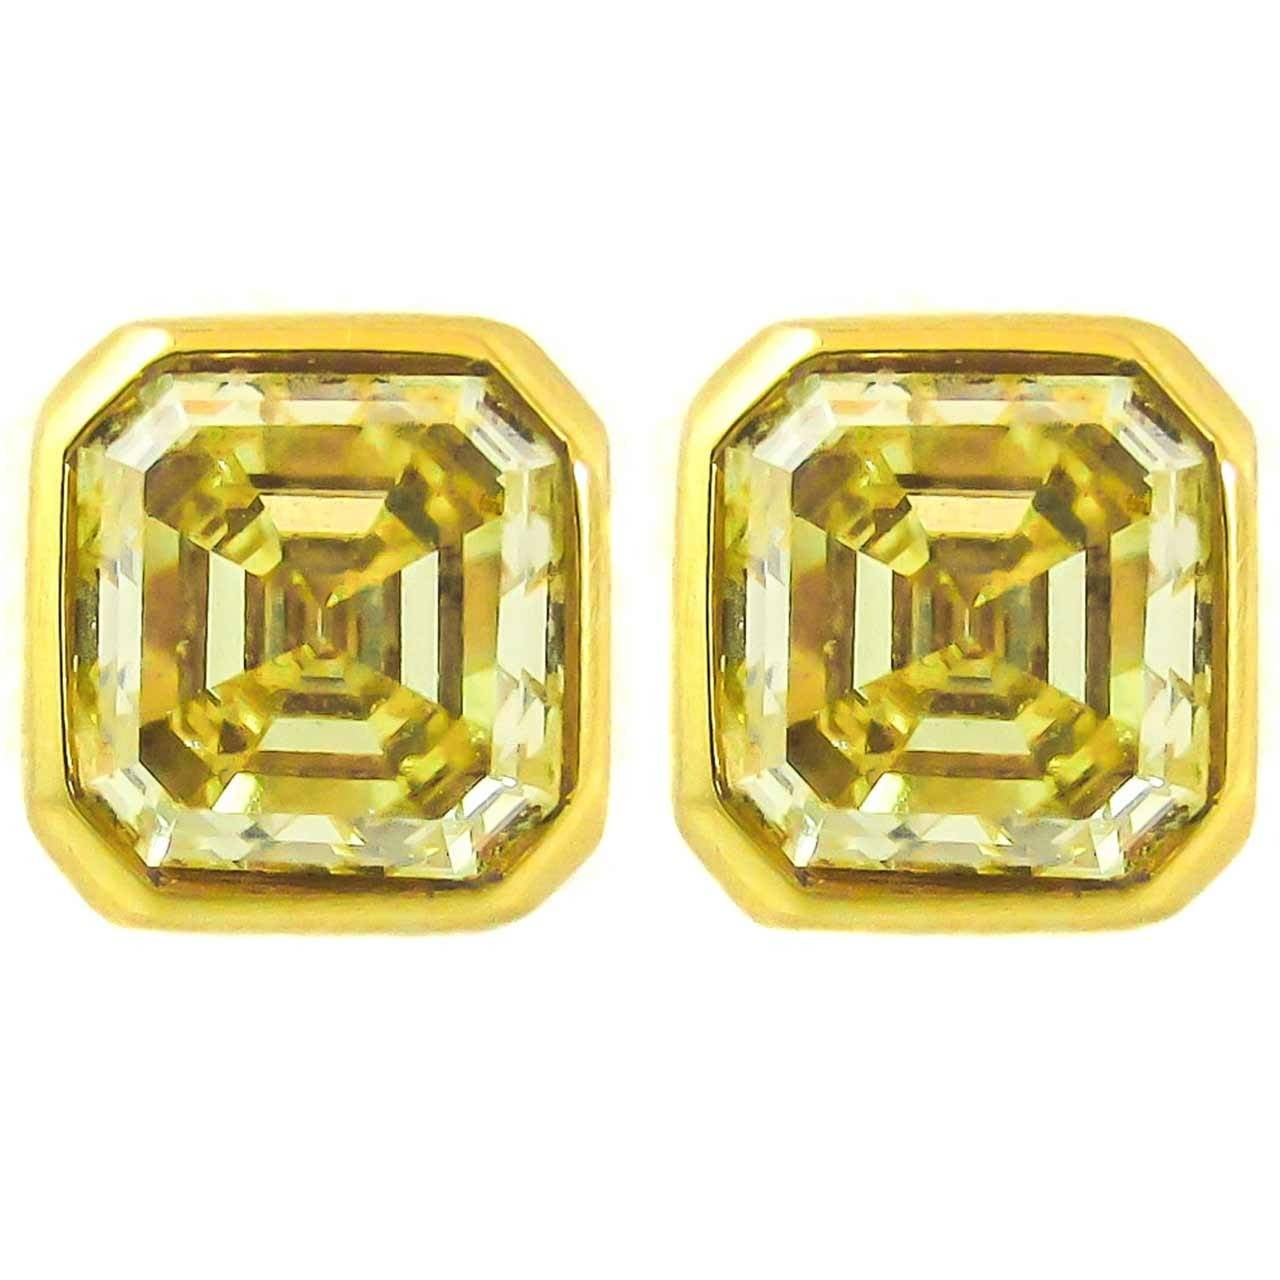 Gia Certified Natural Fancy Intense Yellow Emerald Cut Diamond Stud Earrings For